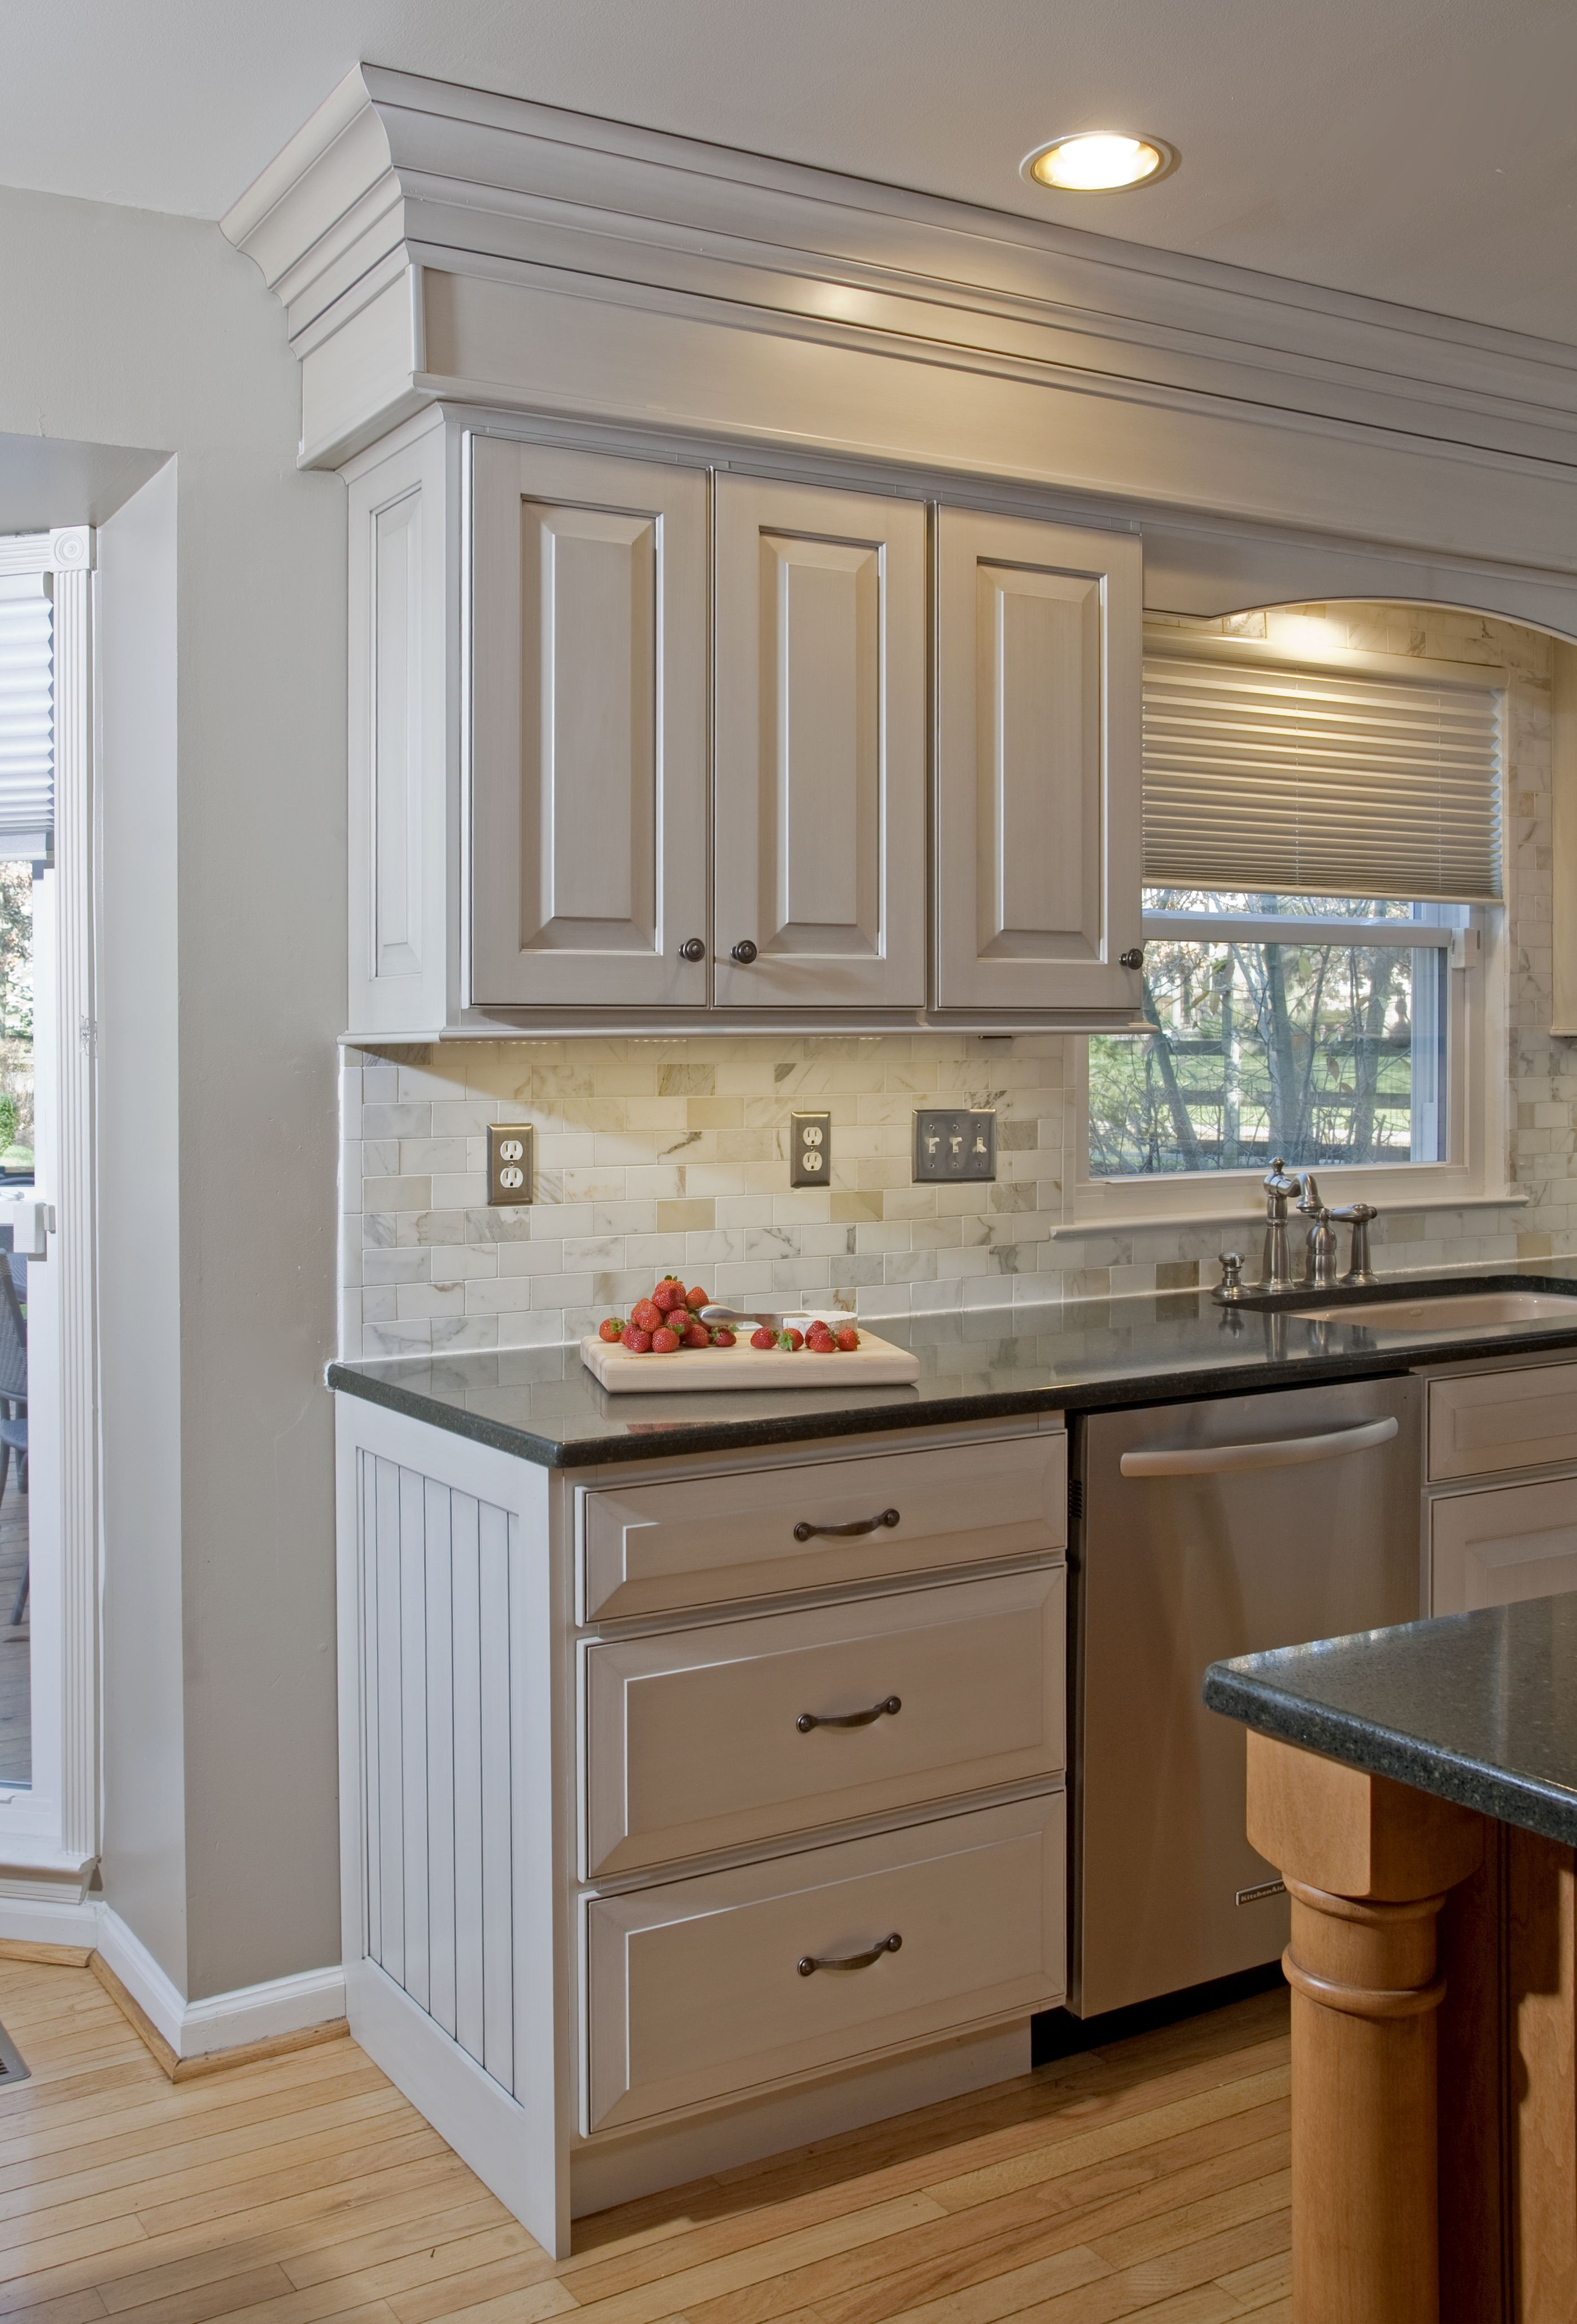 3 Loving Hacks Wainscoting Ceiling Chairs Wainscoting Shelf Laundry Rooms White Wainsc Wainscoting Kitchen Dining Room Wainscoting Kitchen Cabinets End Panels